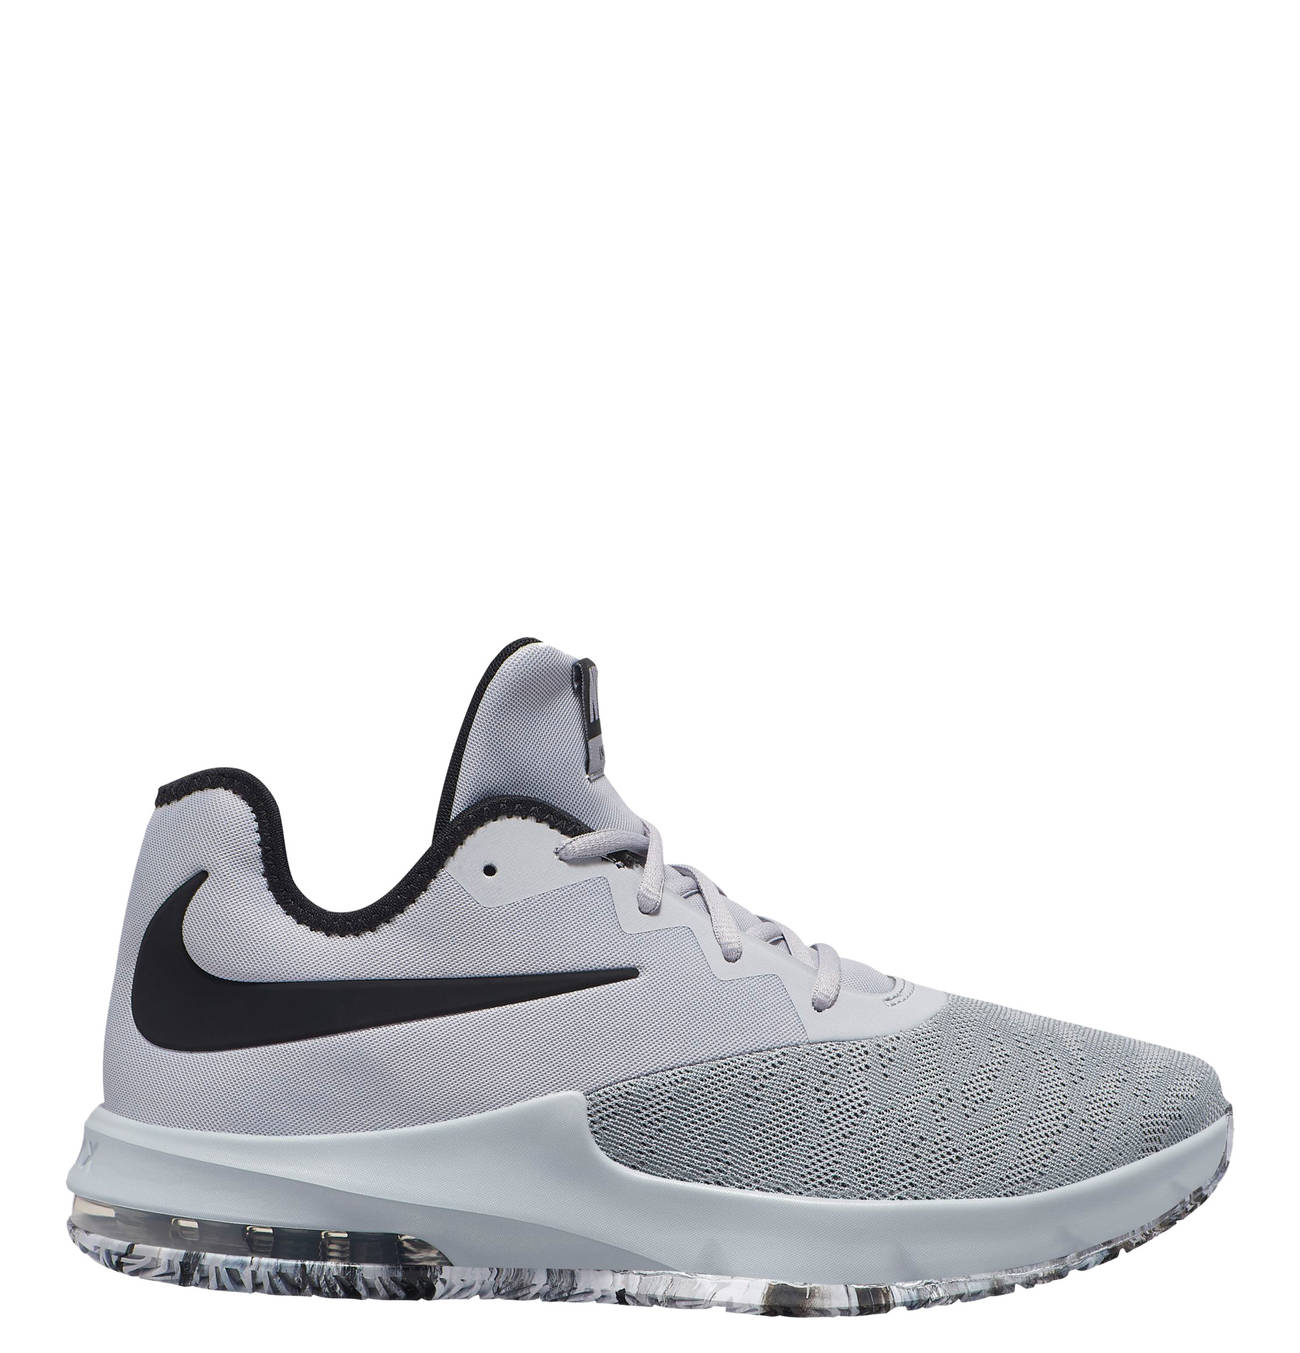 Nike Herren Air Max Infuriate 2 Low Basketballschuhe